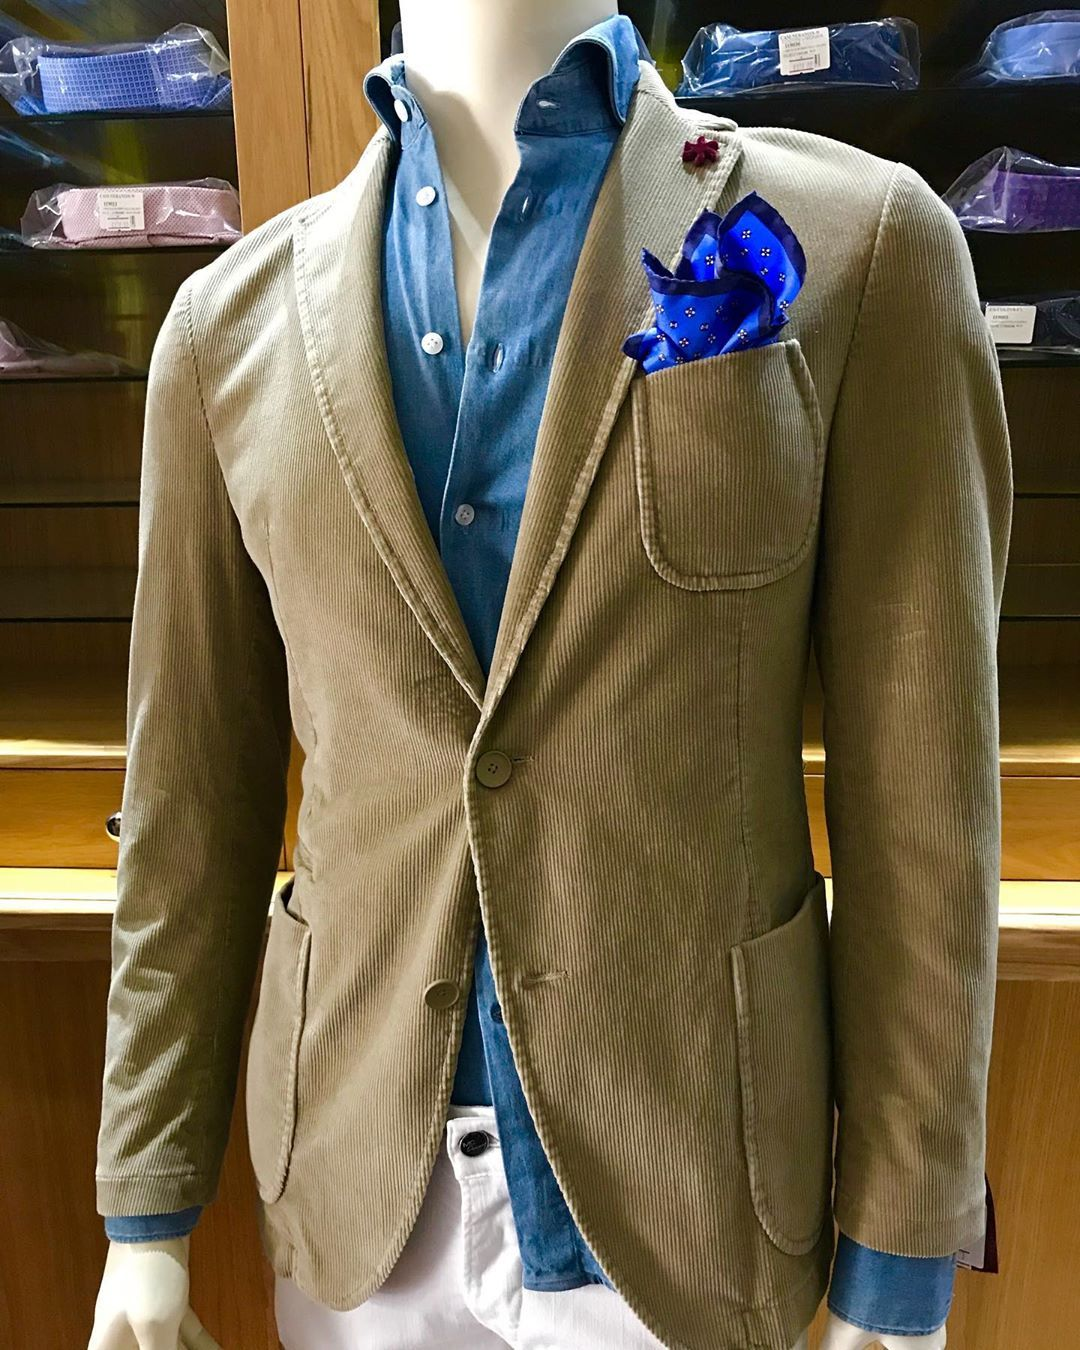 Gentleman Boutique On Instagram Gentleman Boutique Camicia Di Jeans Vintage Giacca In Velluto 1000 Righe Shopping O Fashion Fashion Outfits Mens Fashion